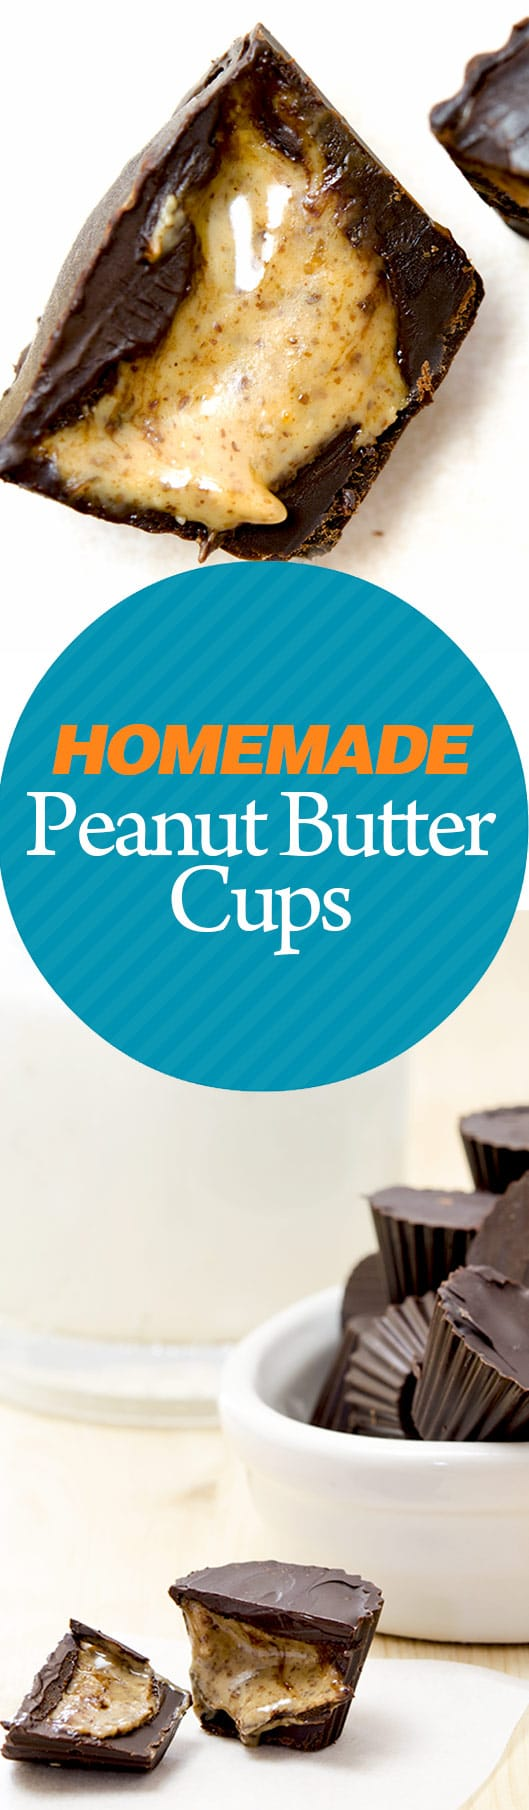 This recipe for homemade peanut butter cups is incredibly easy and results in delicious, bite sized cups of deliciousness.